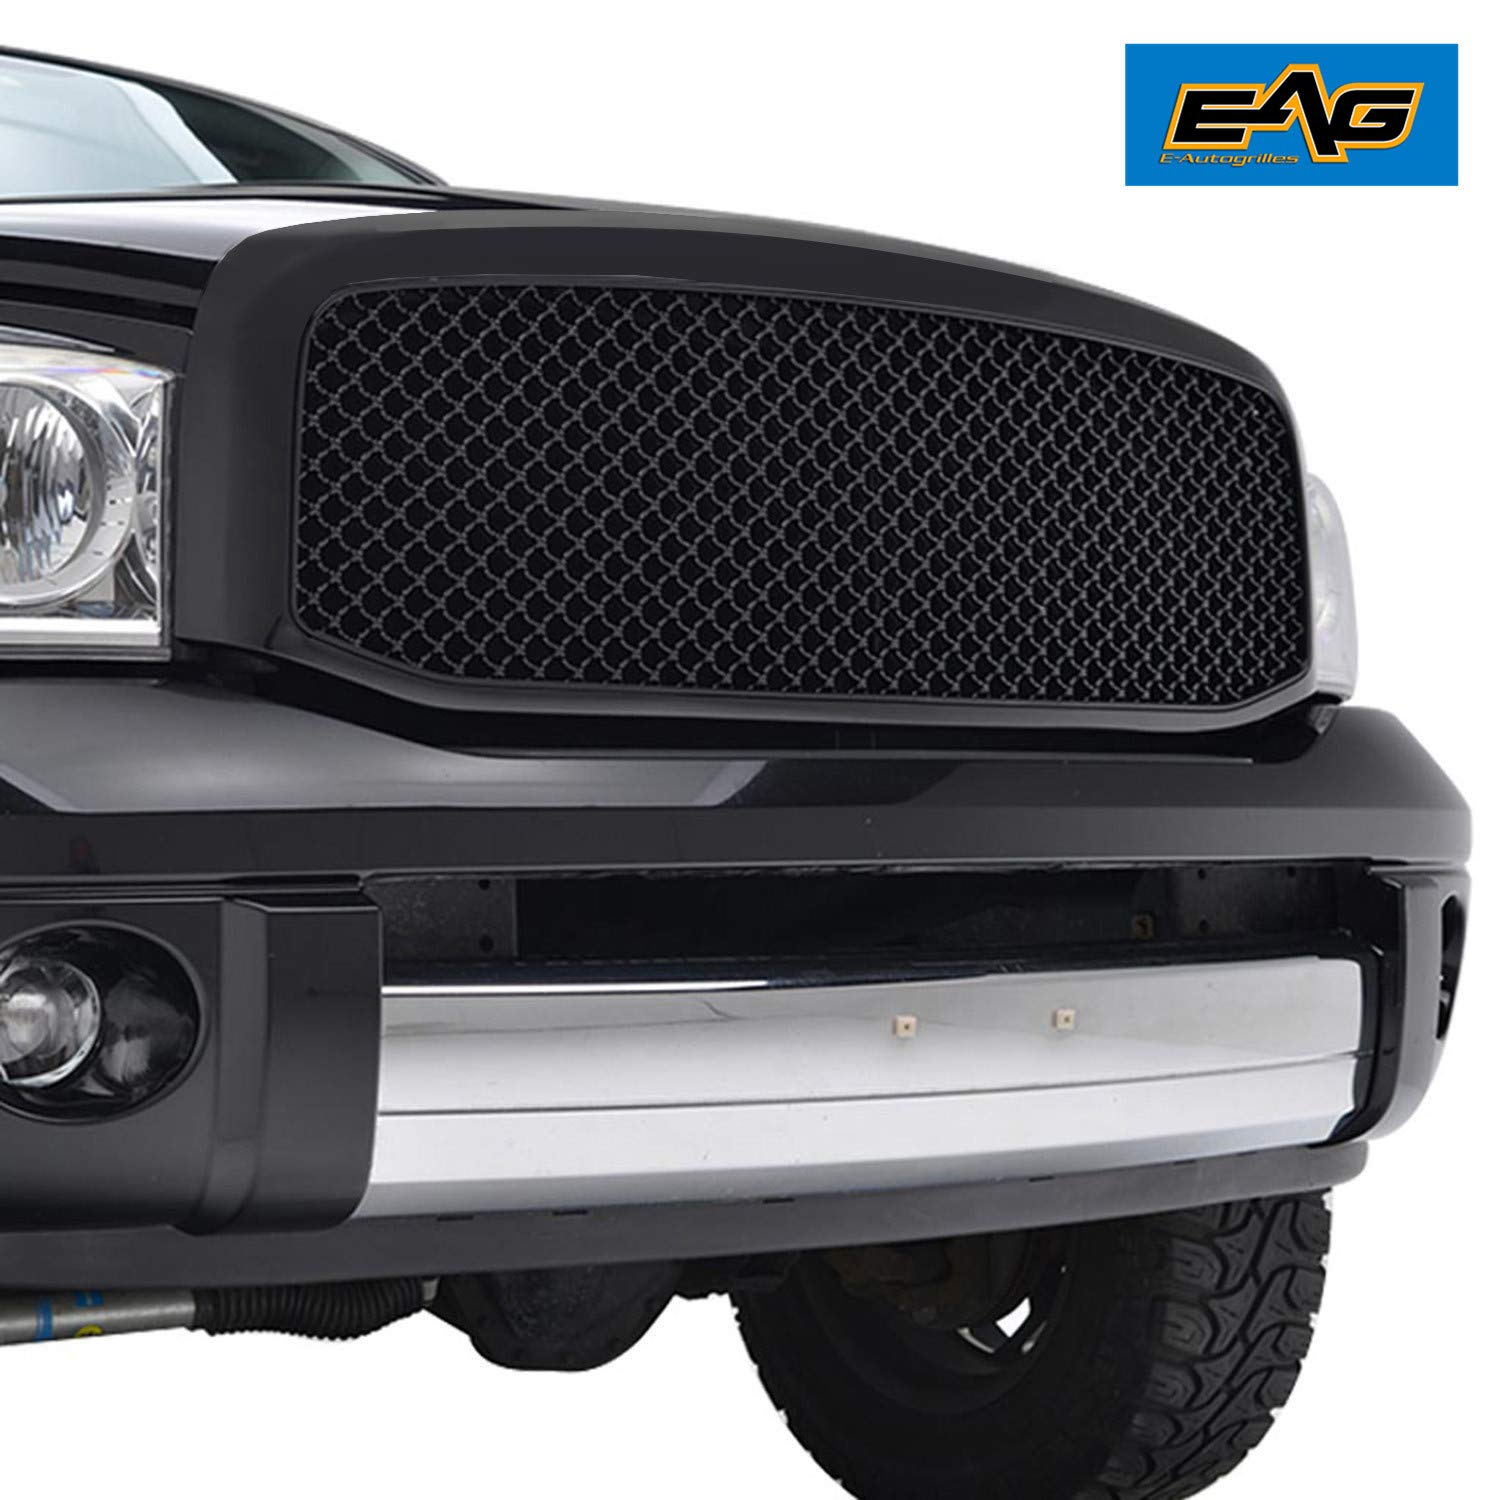 EAG Ram Replacement Upper Grille Mesh ABS Grill for 06-08 Dodge Ram 1500/06-09 Ram 2500/3500 - Matte Black